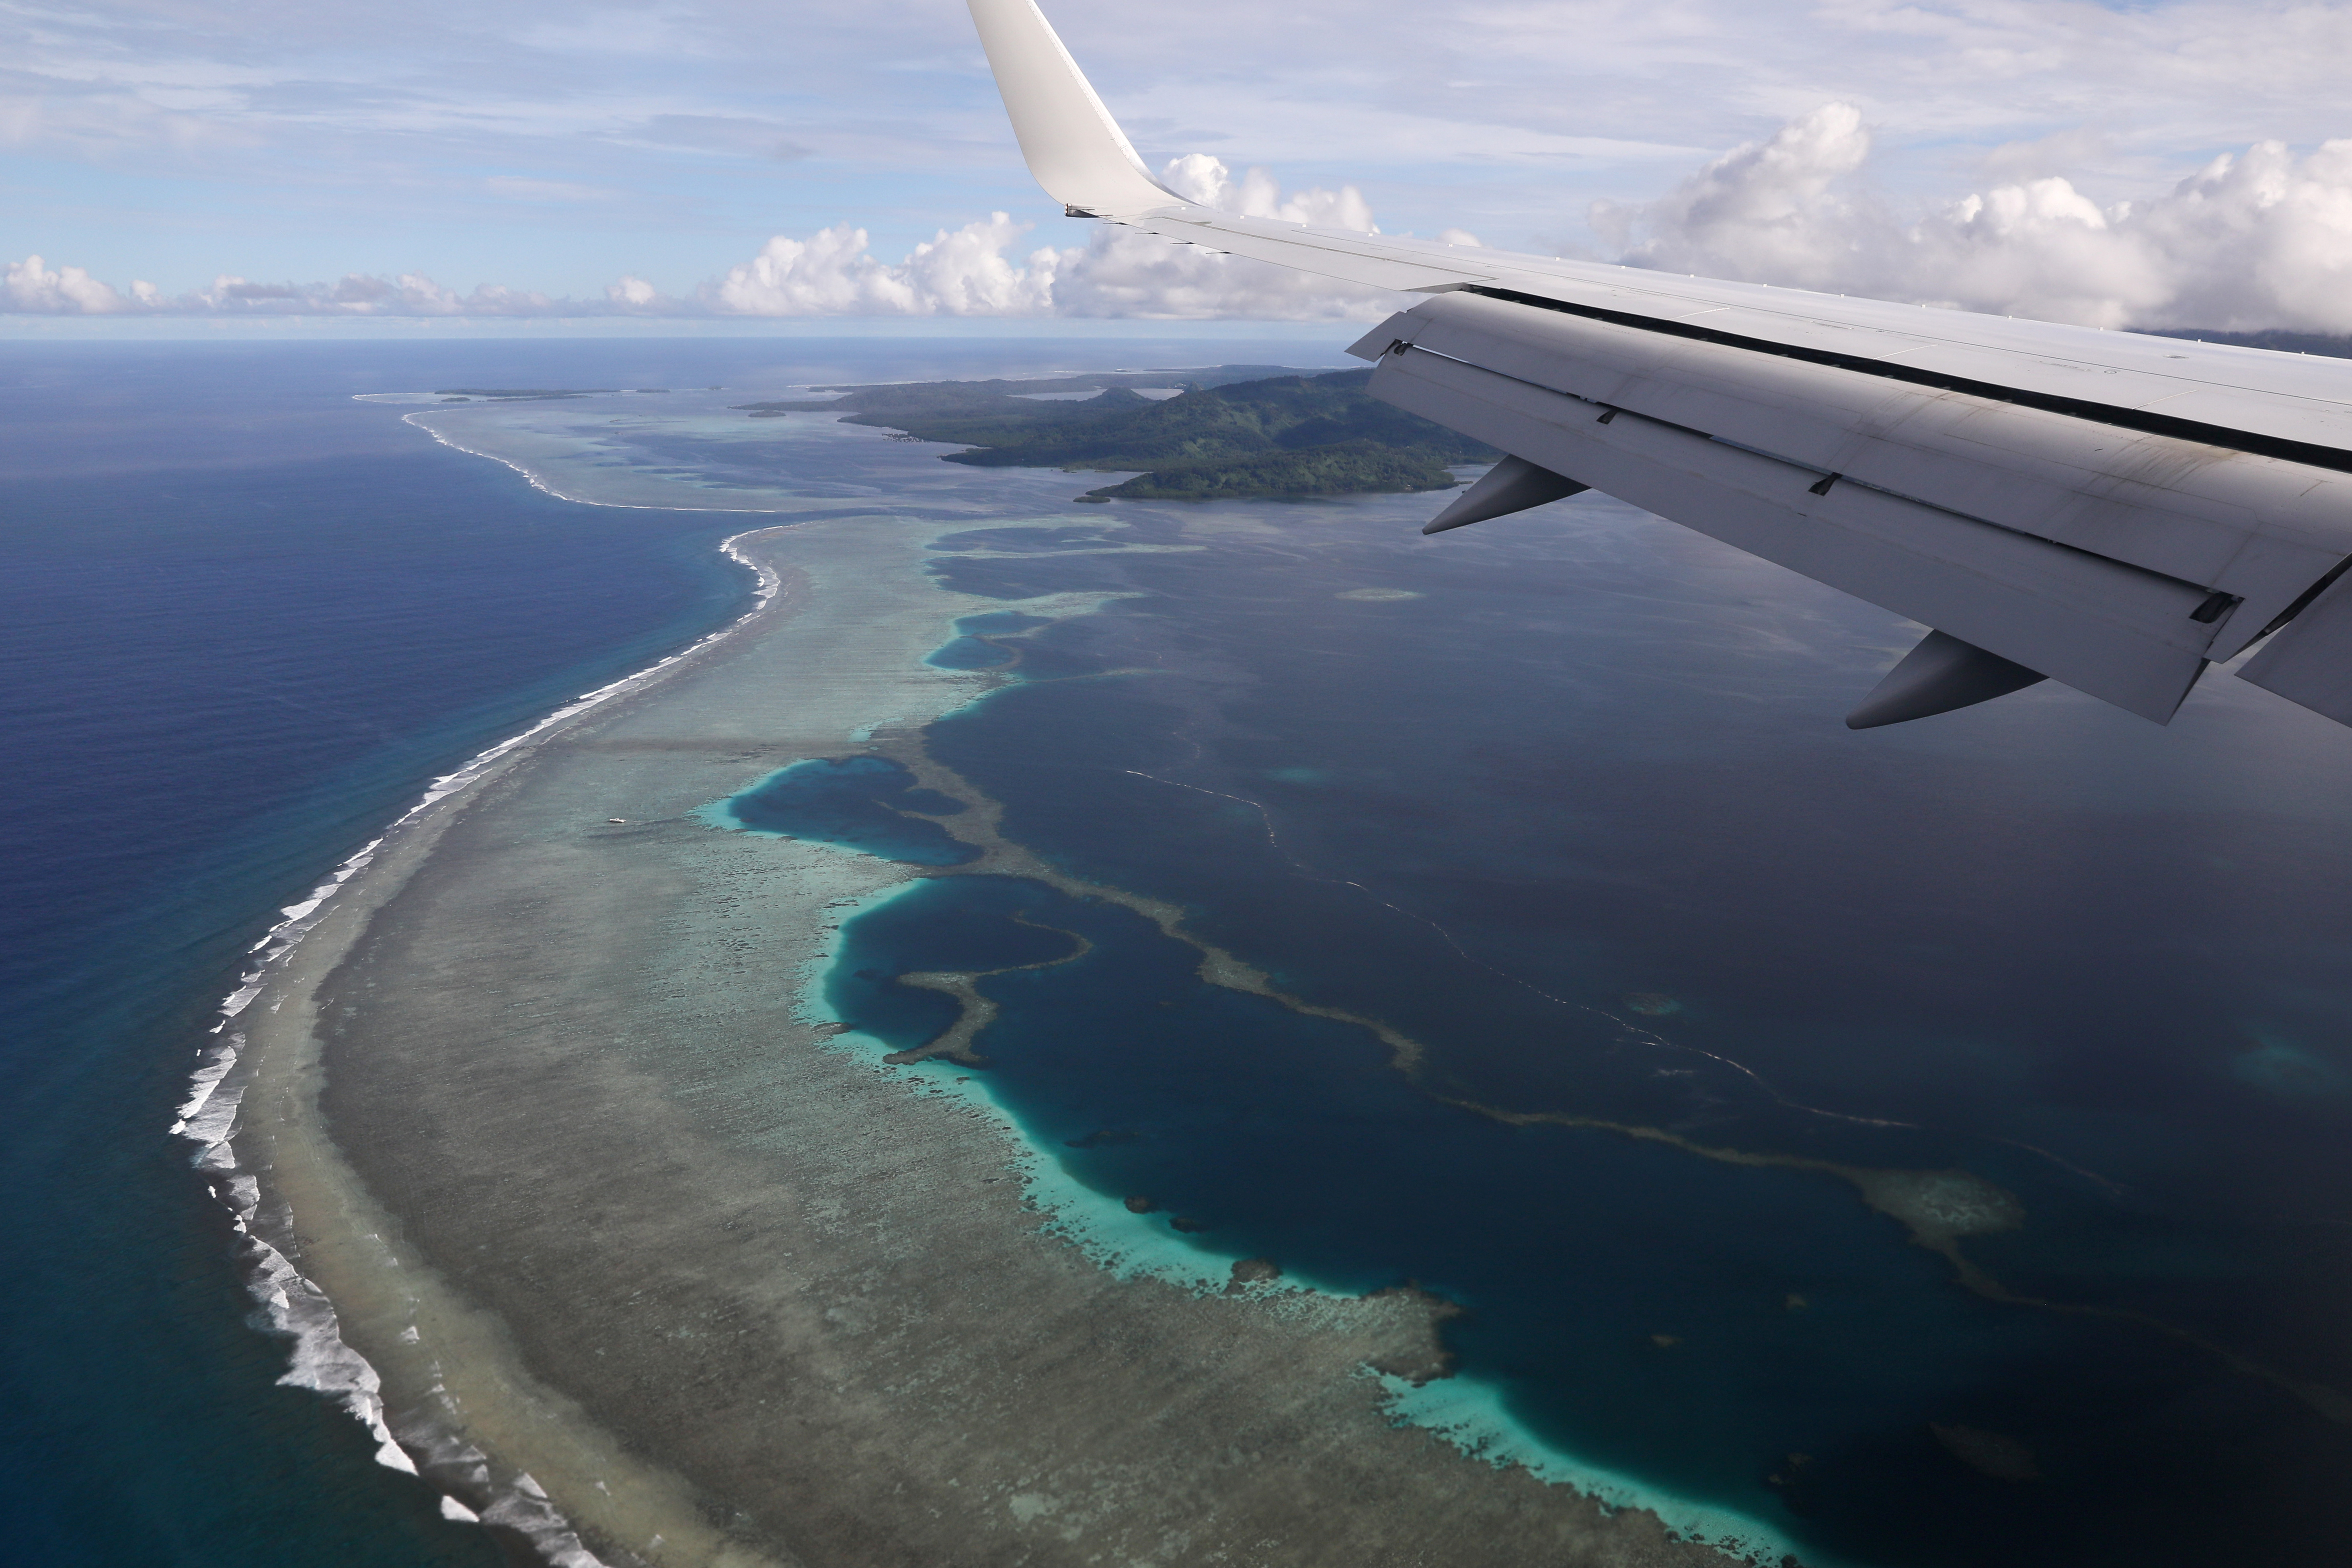 U.S. Secretary of State Mike Pompeo's plane makes its landing approach on Pohnpei International Airport in Kolonia, Federated States of Micronesia August 5, 2019. REUTERS/Jonathan Ernst/File Photo